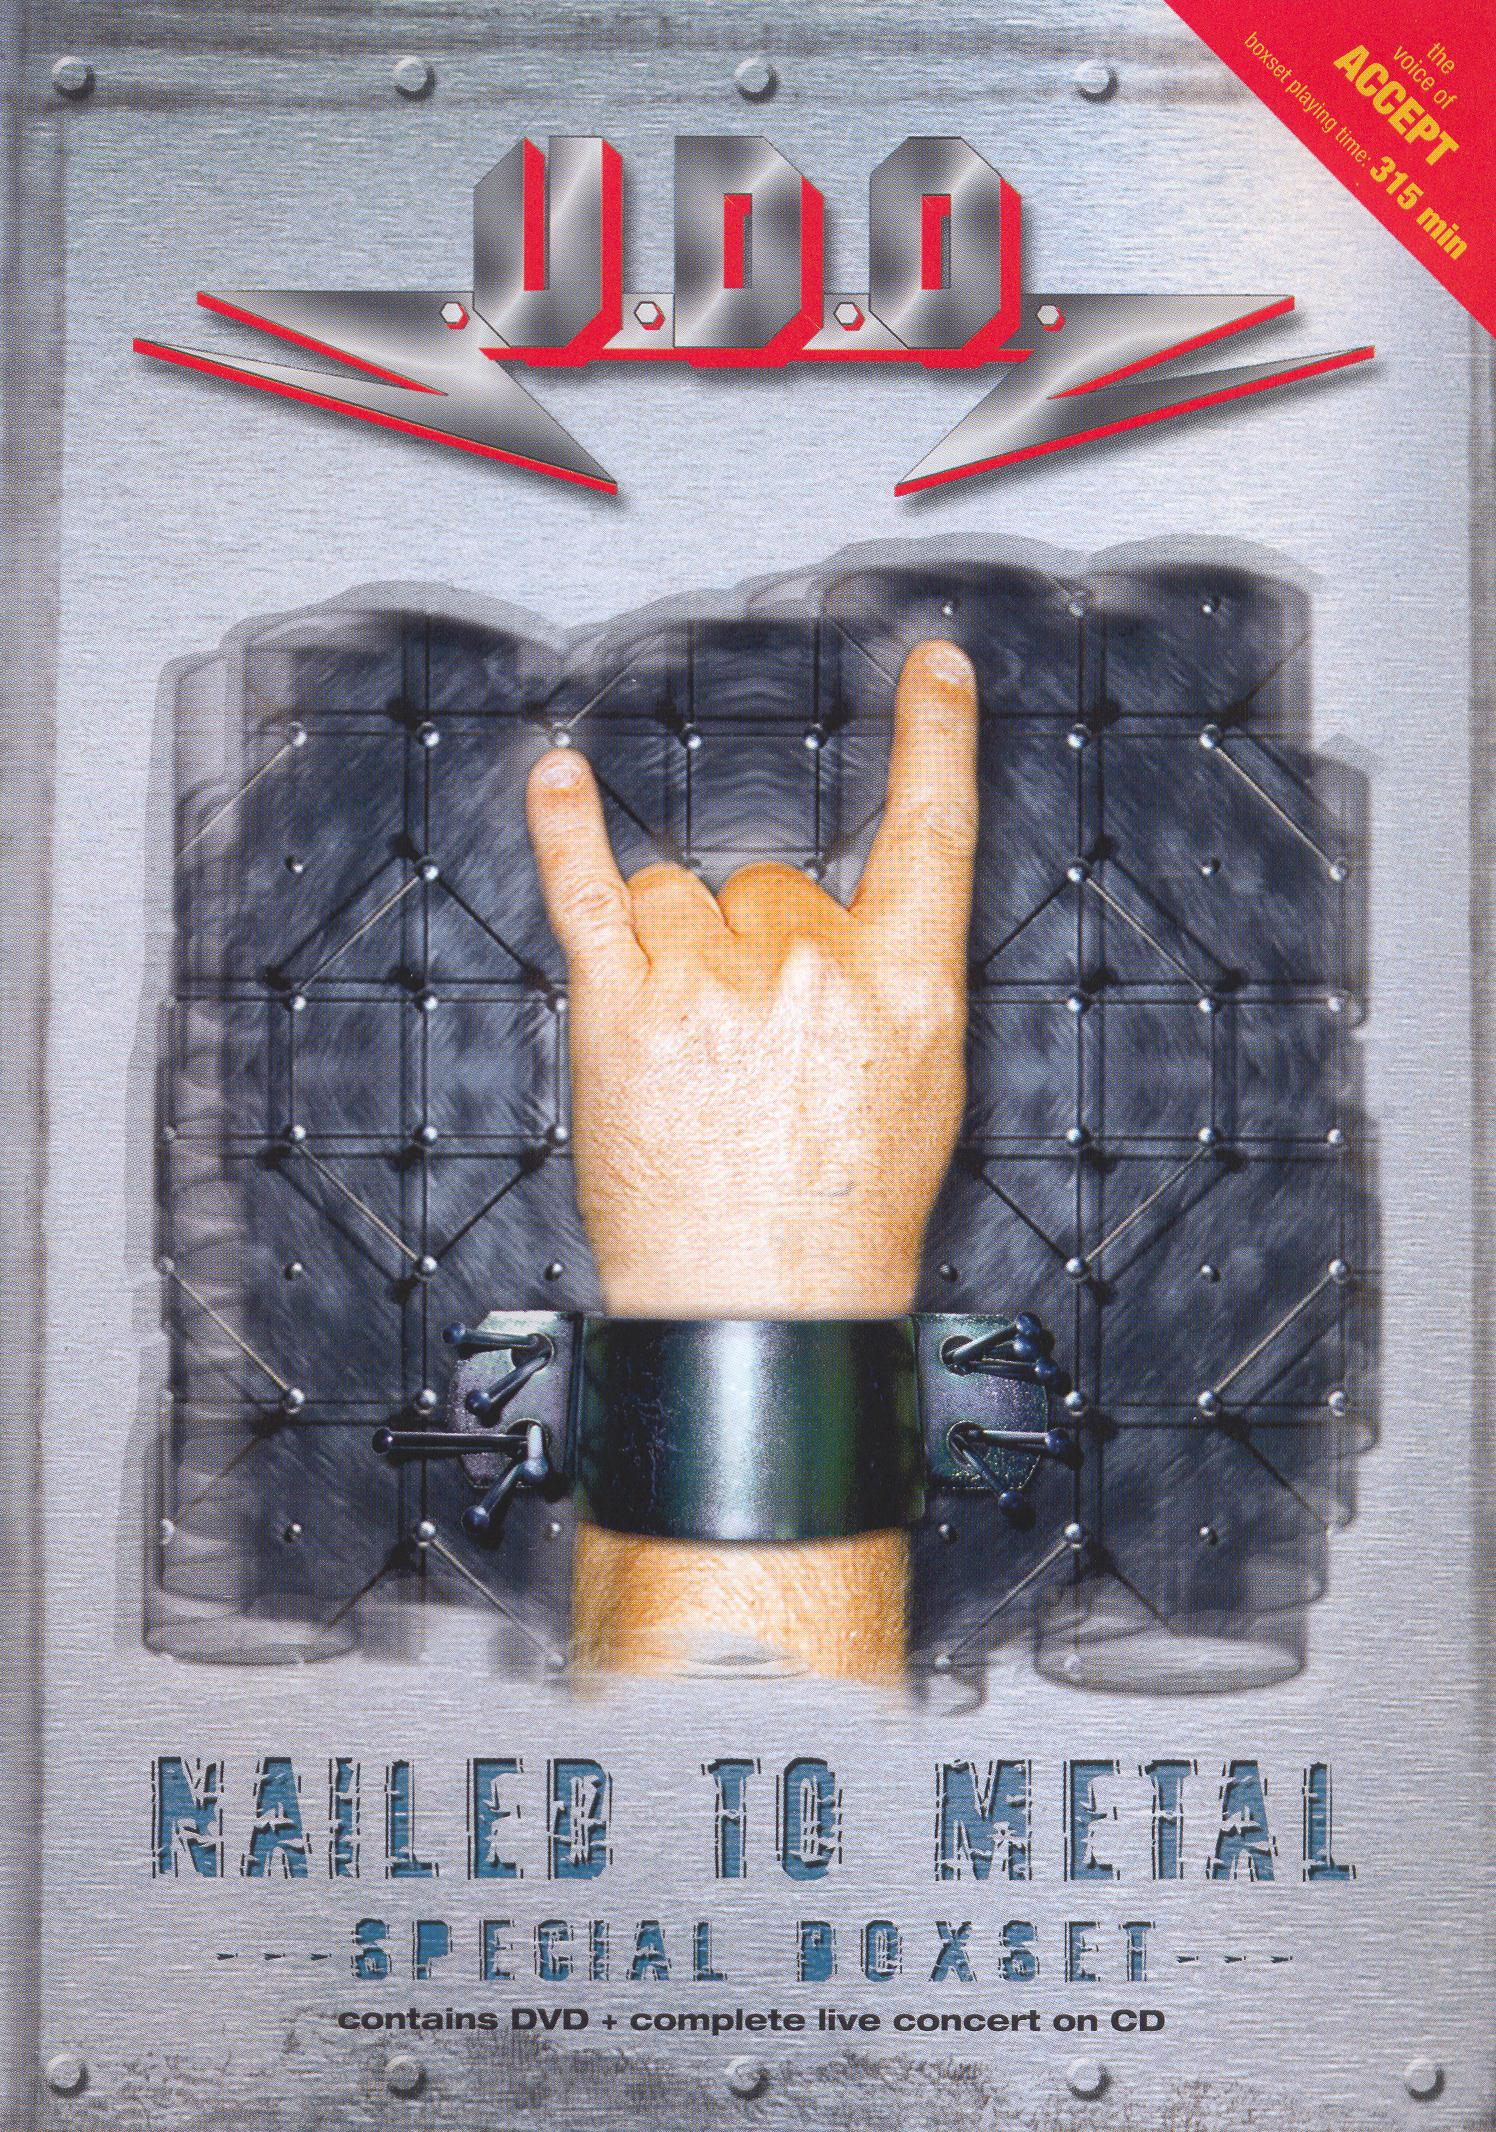 U.D.O.: Nailed To Metal - The Complete History